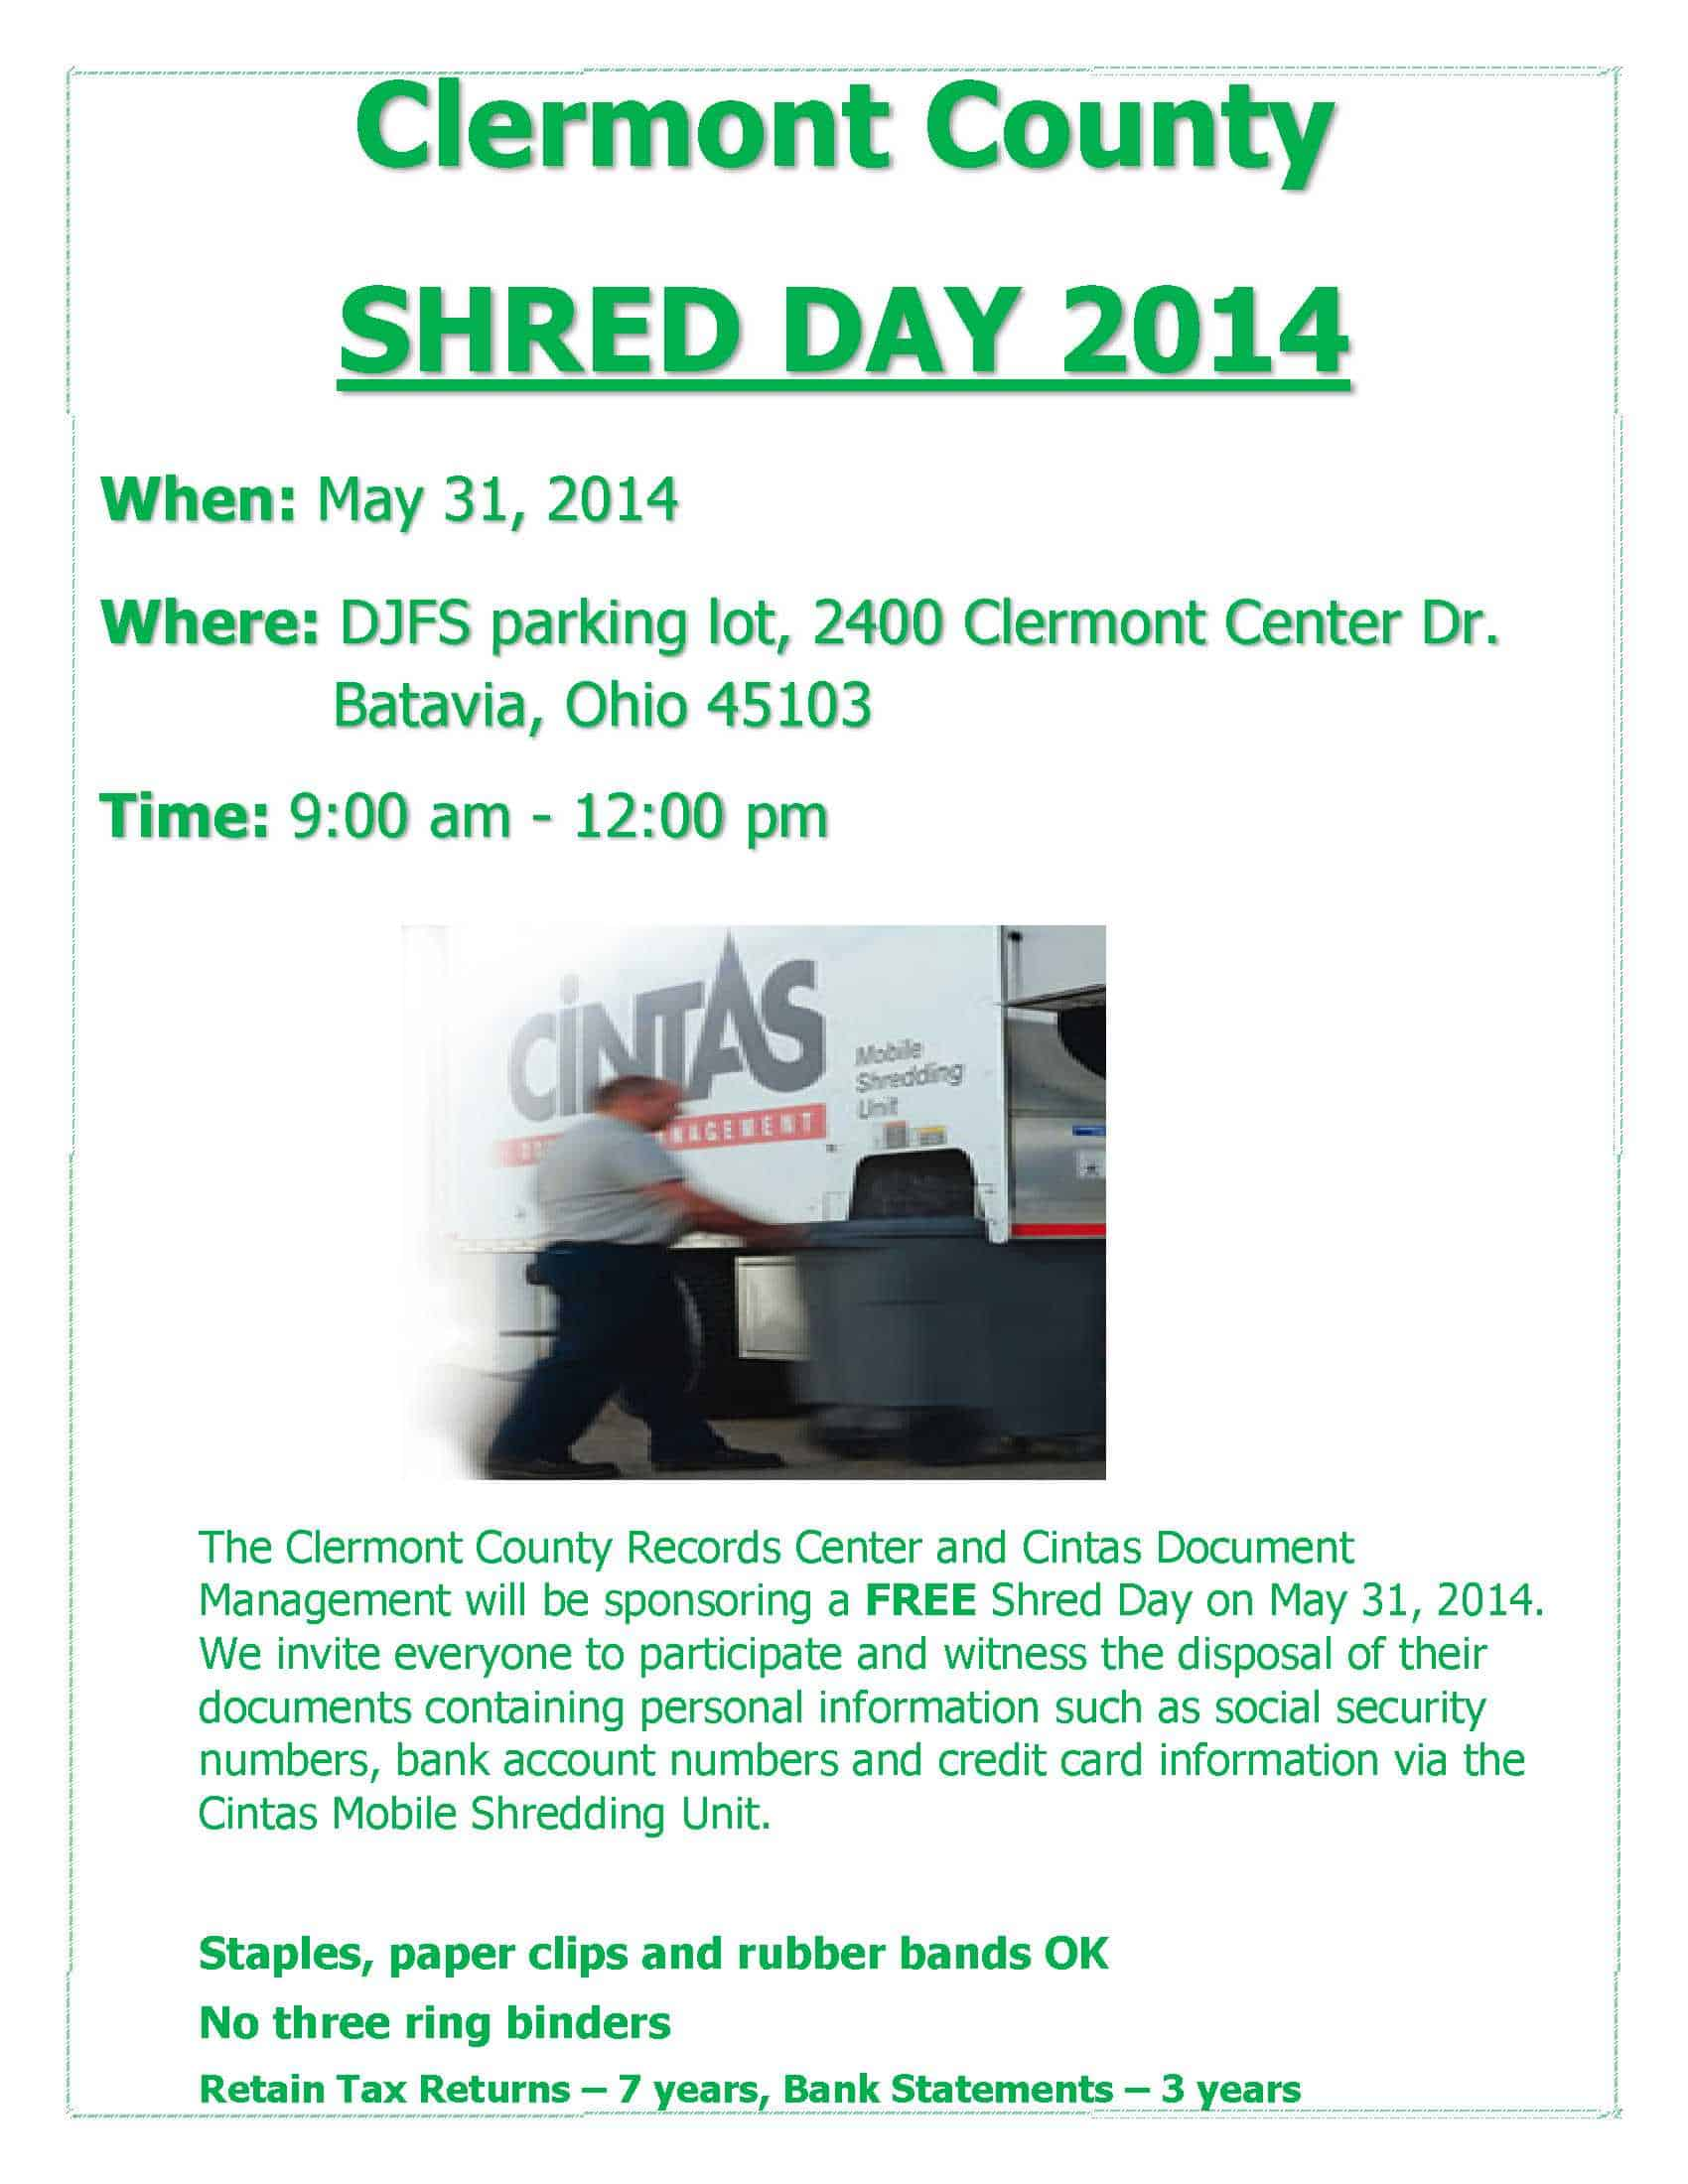 shred day 2014